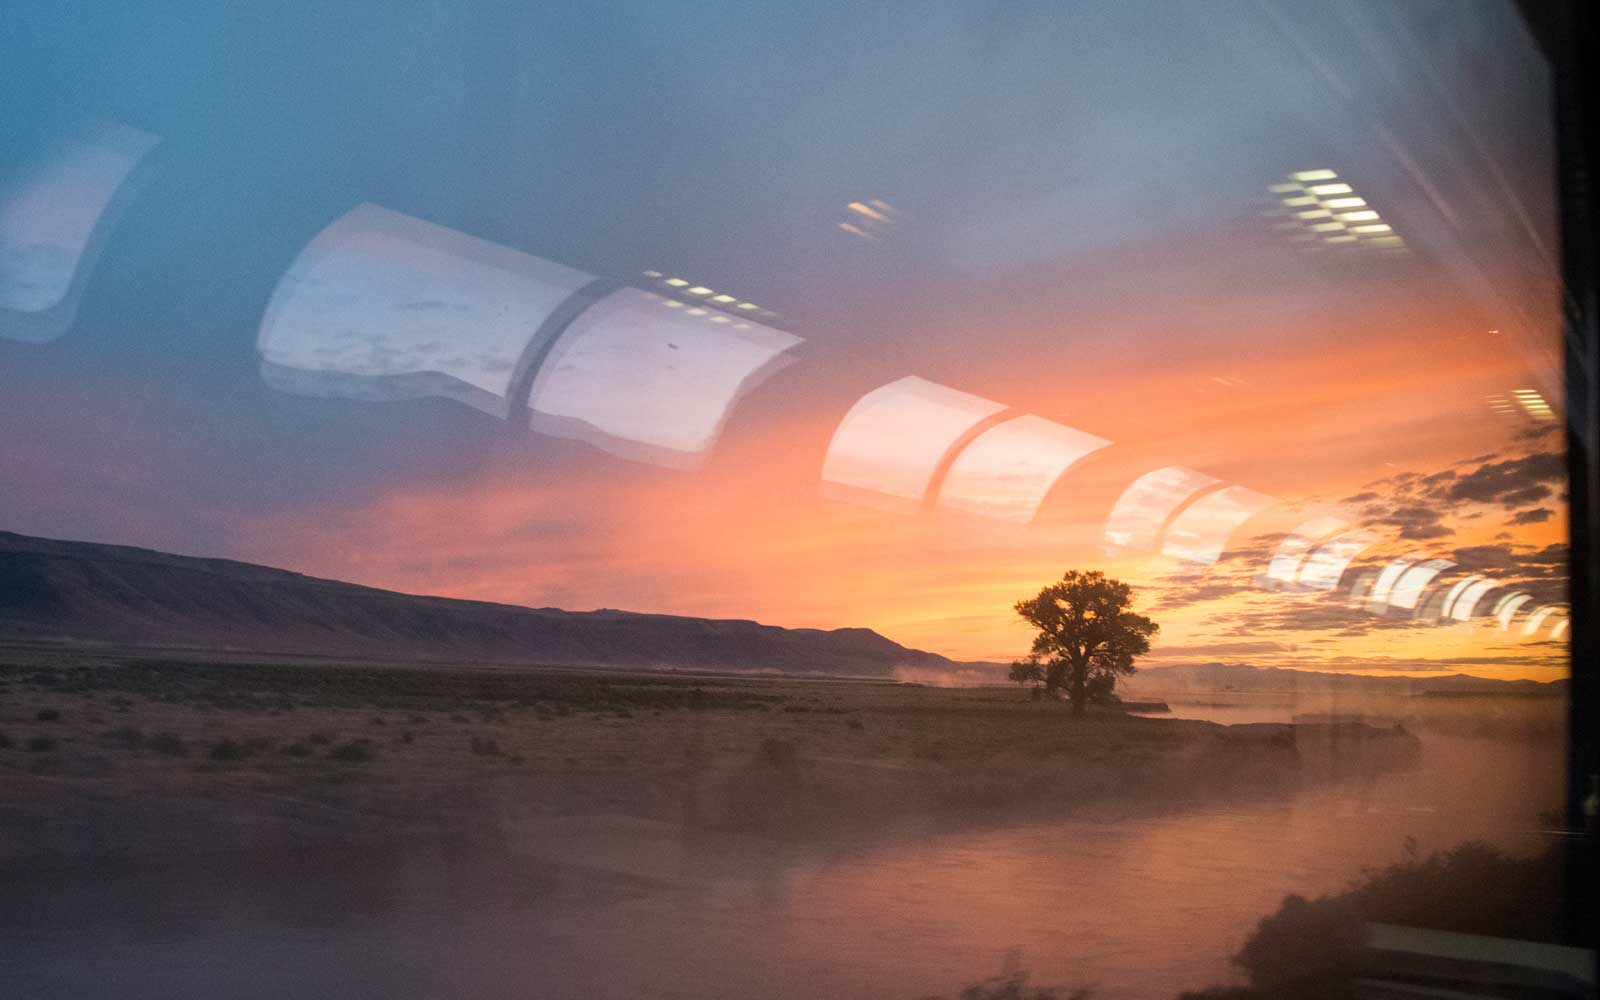 Views onboard the California Zephyr Amtrak train.